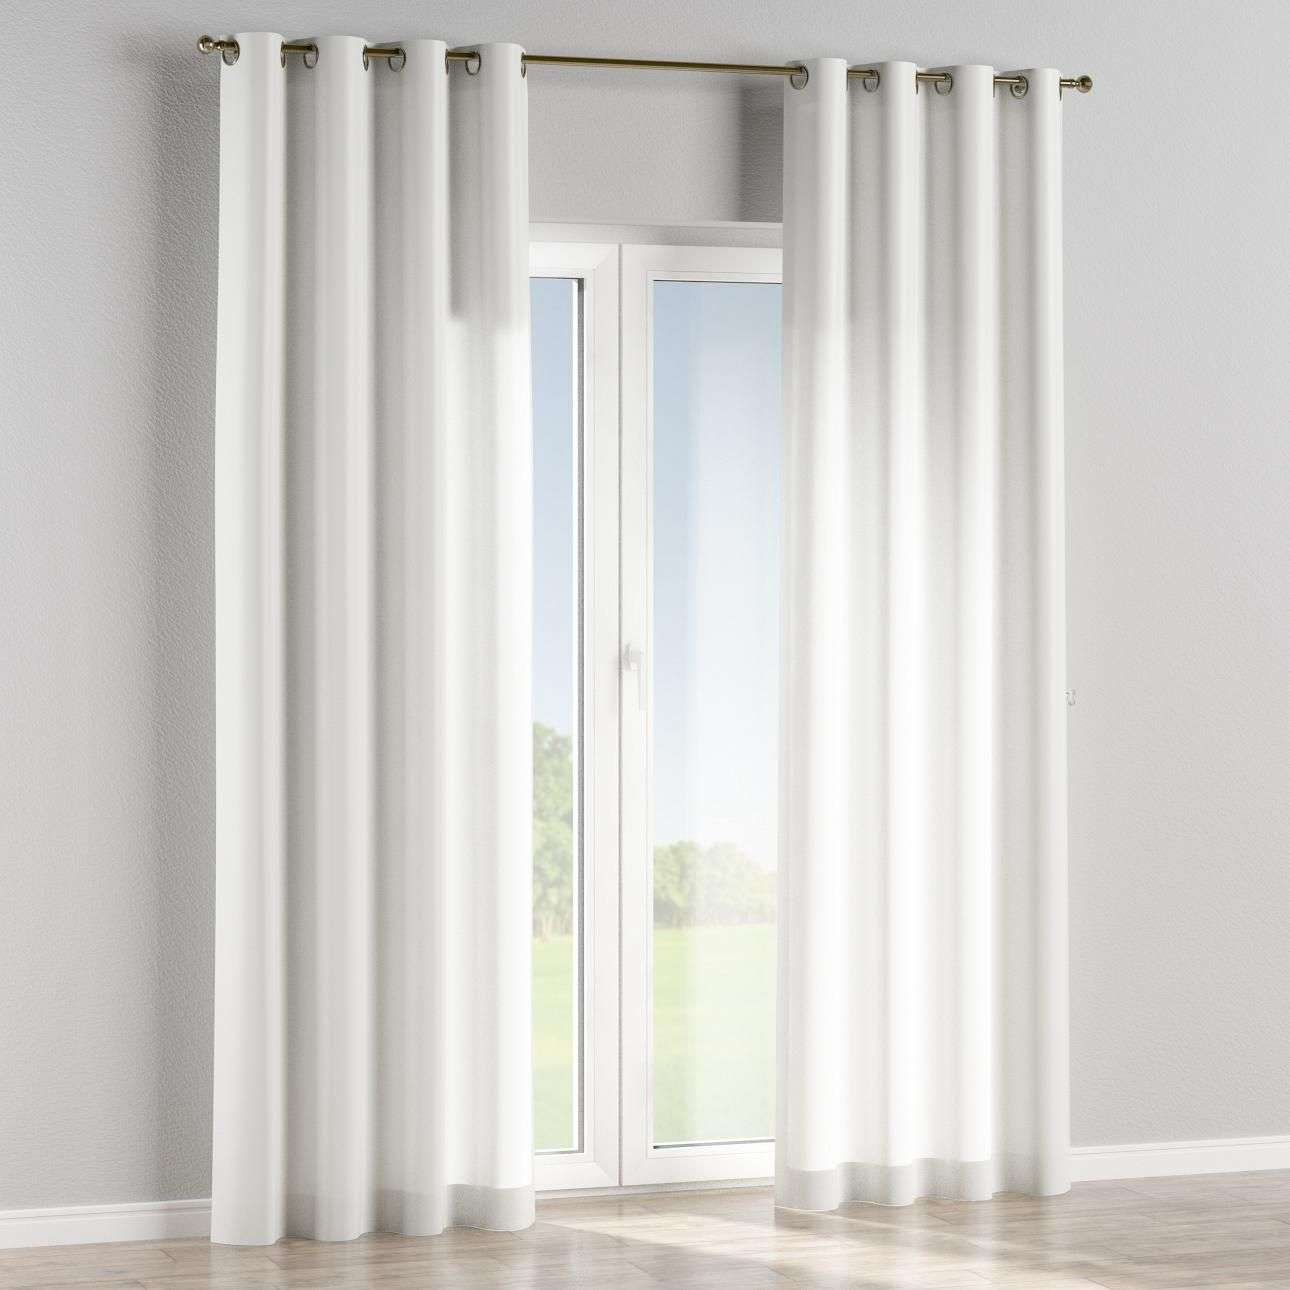 Eyelet curtains in collection Mirella, fabric: 143-06